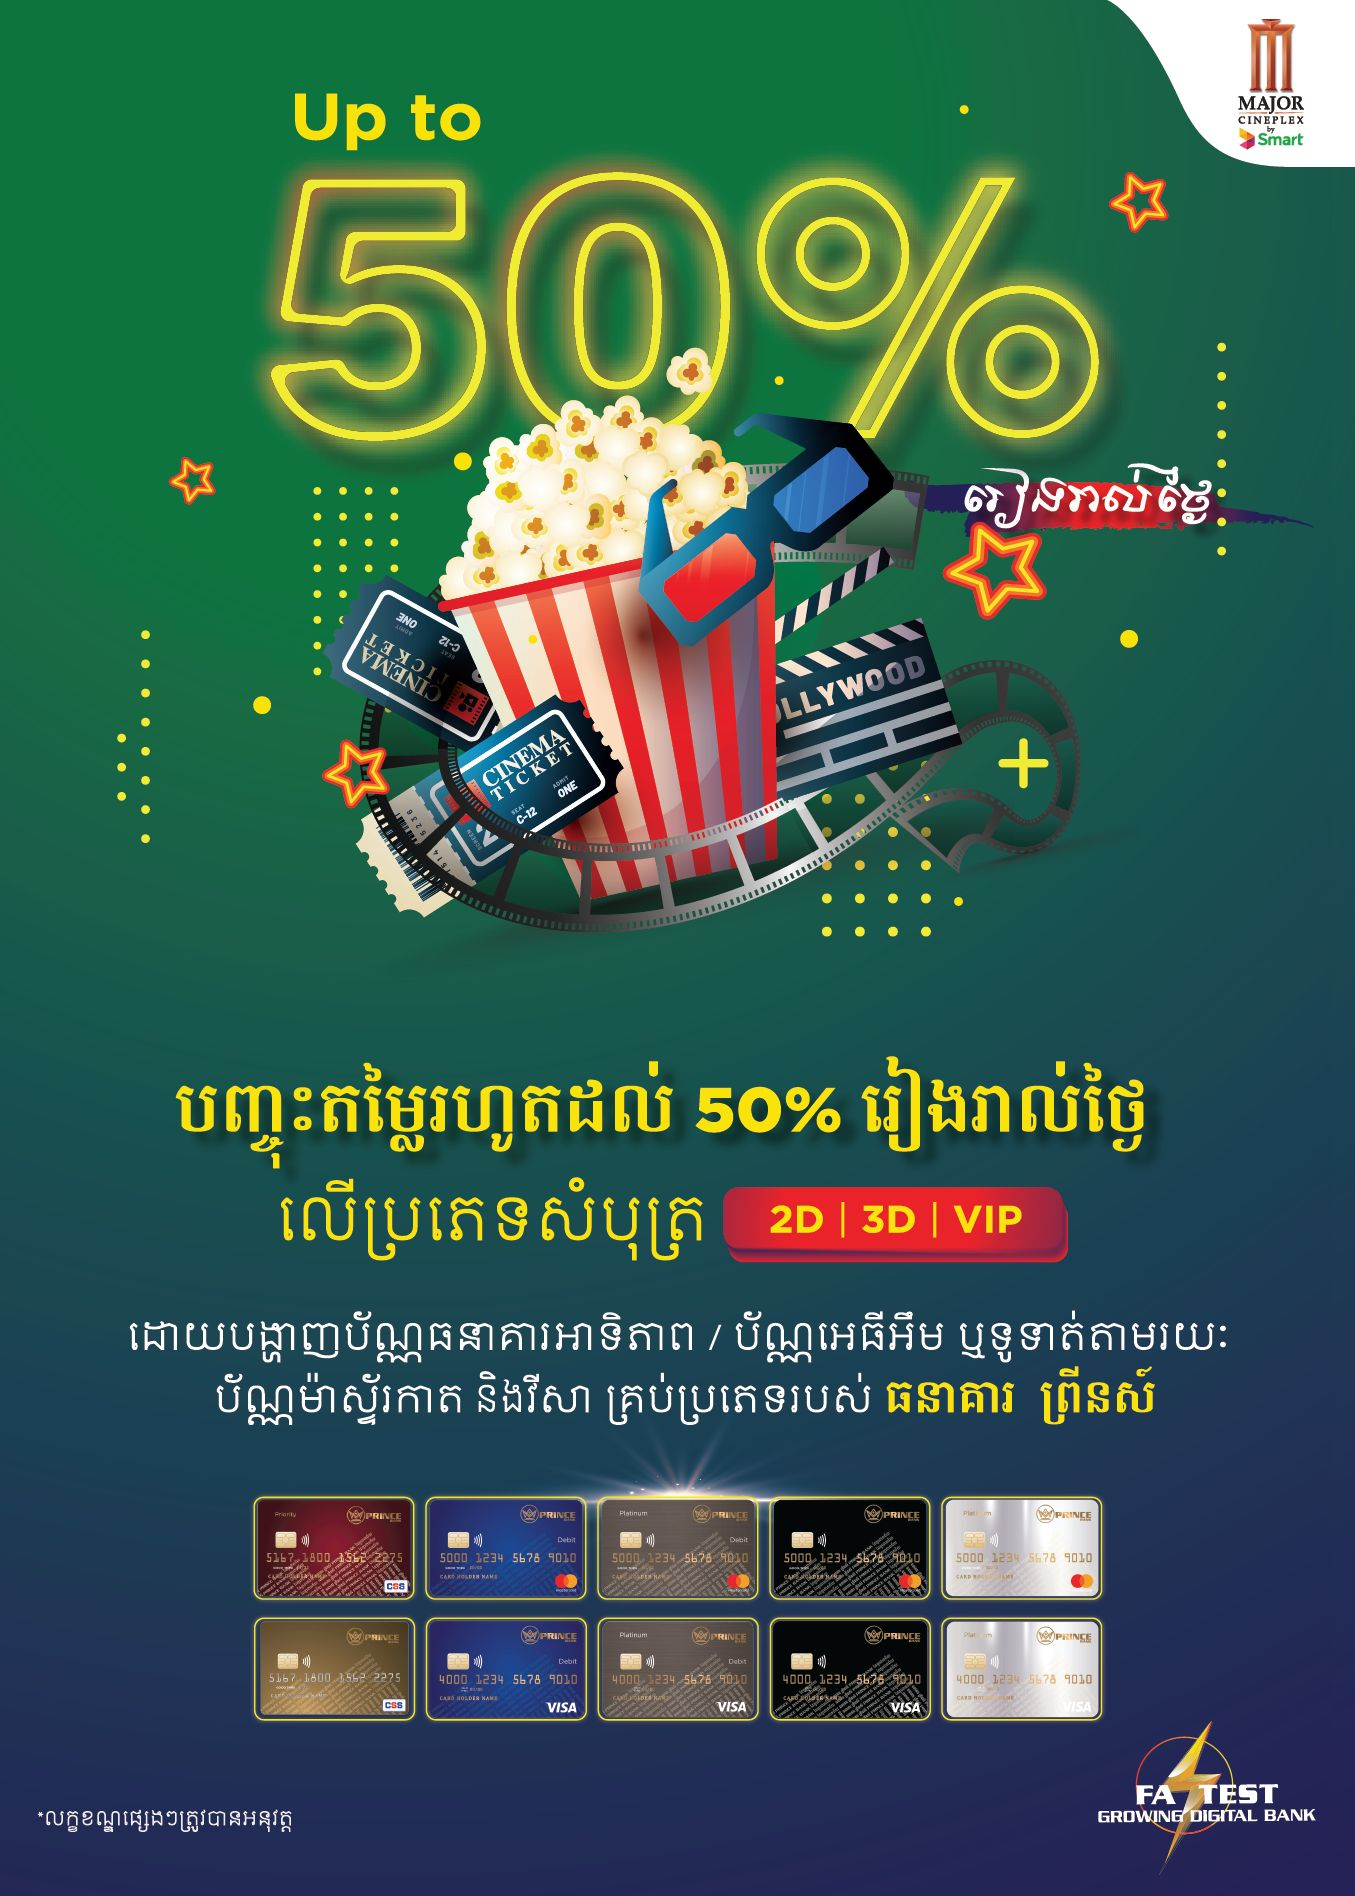 A Wonderful Discount of up to 50% on movie tickets